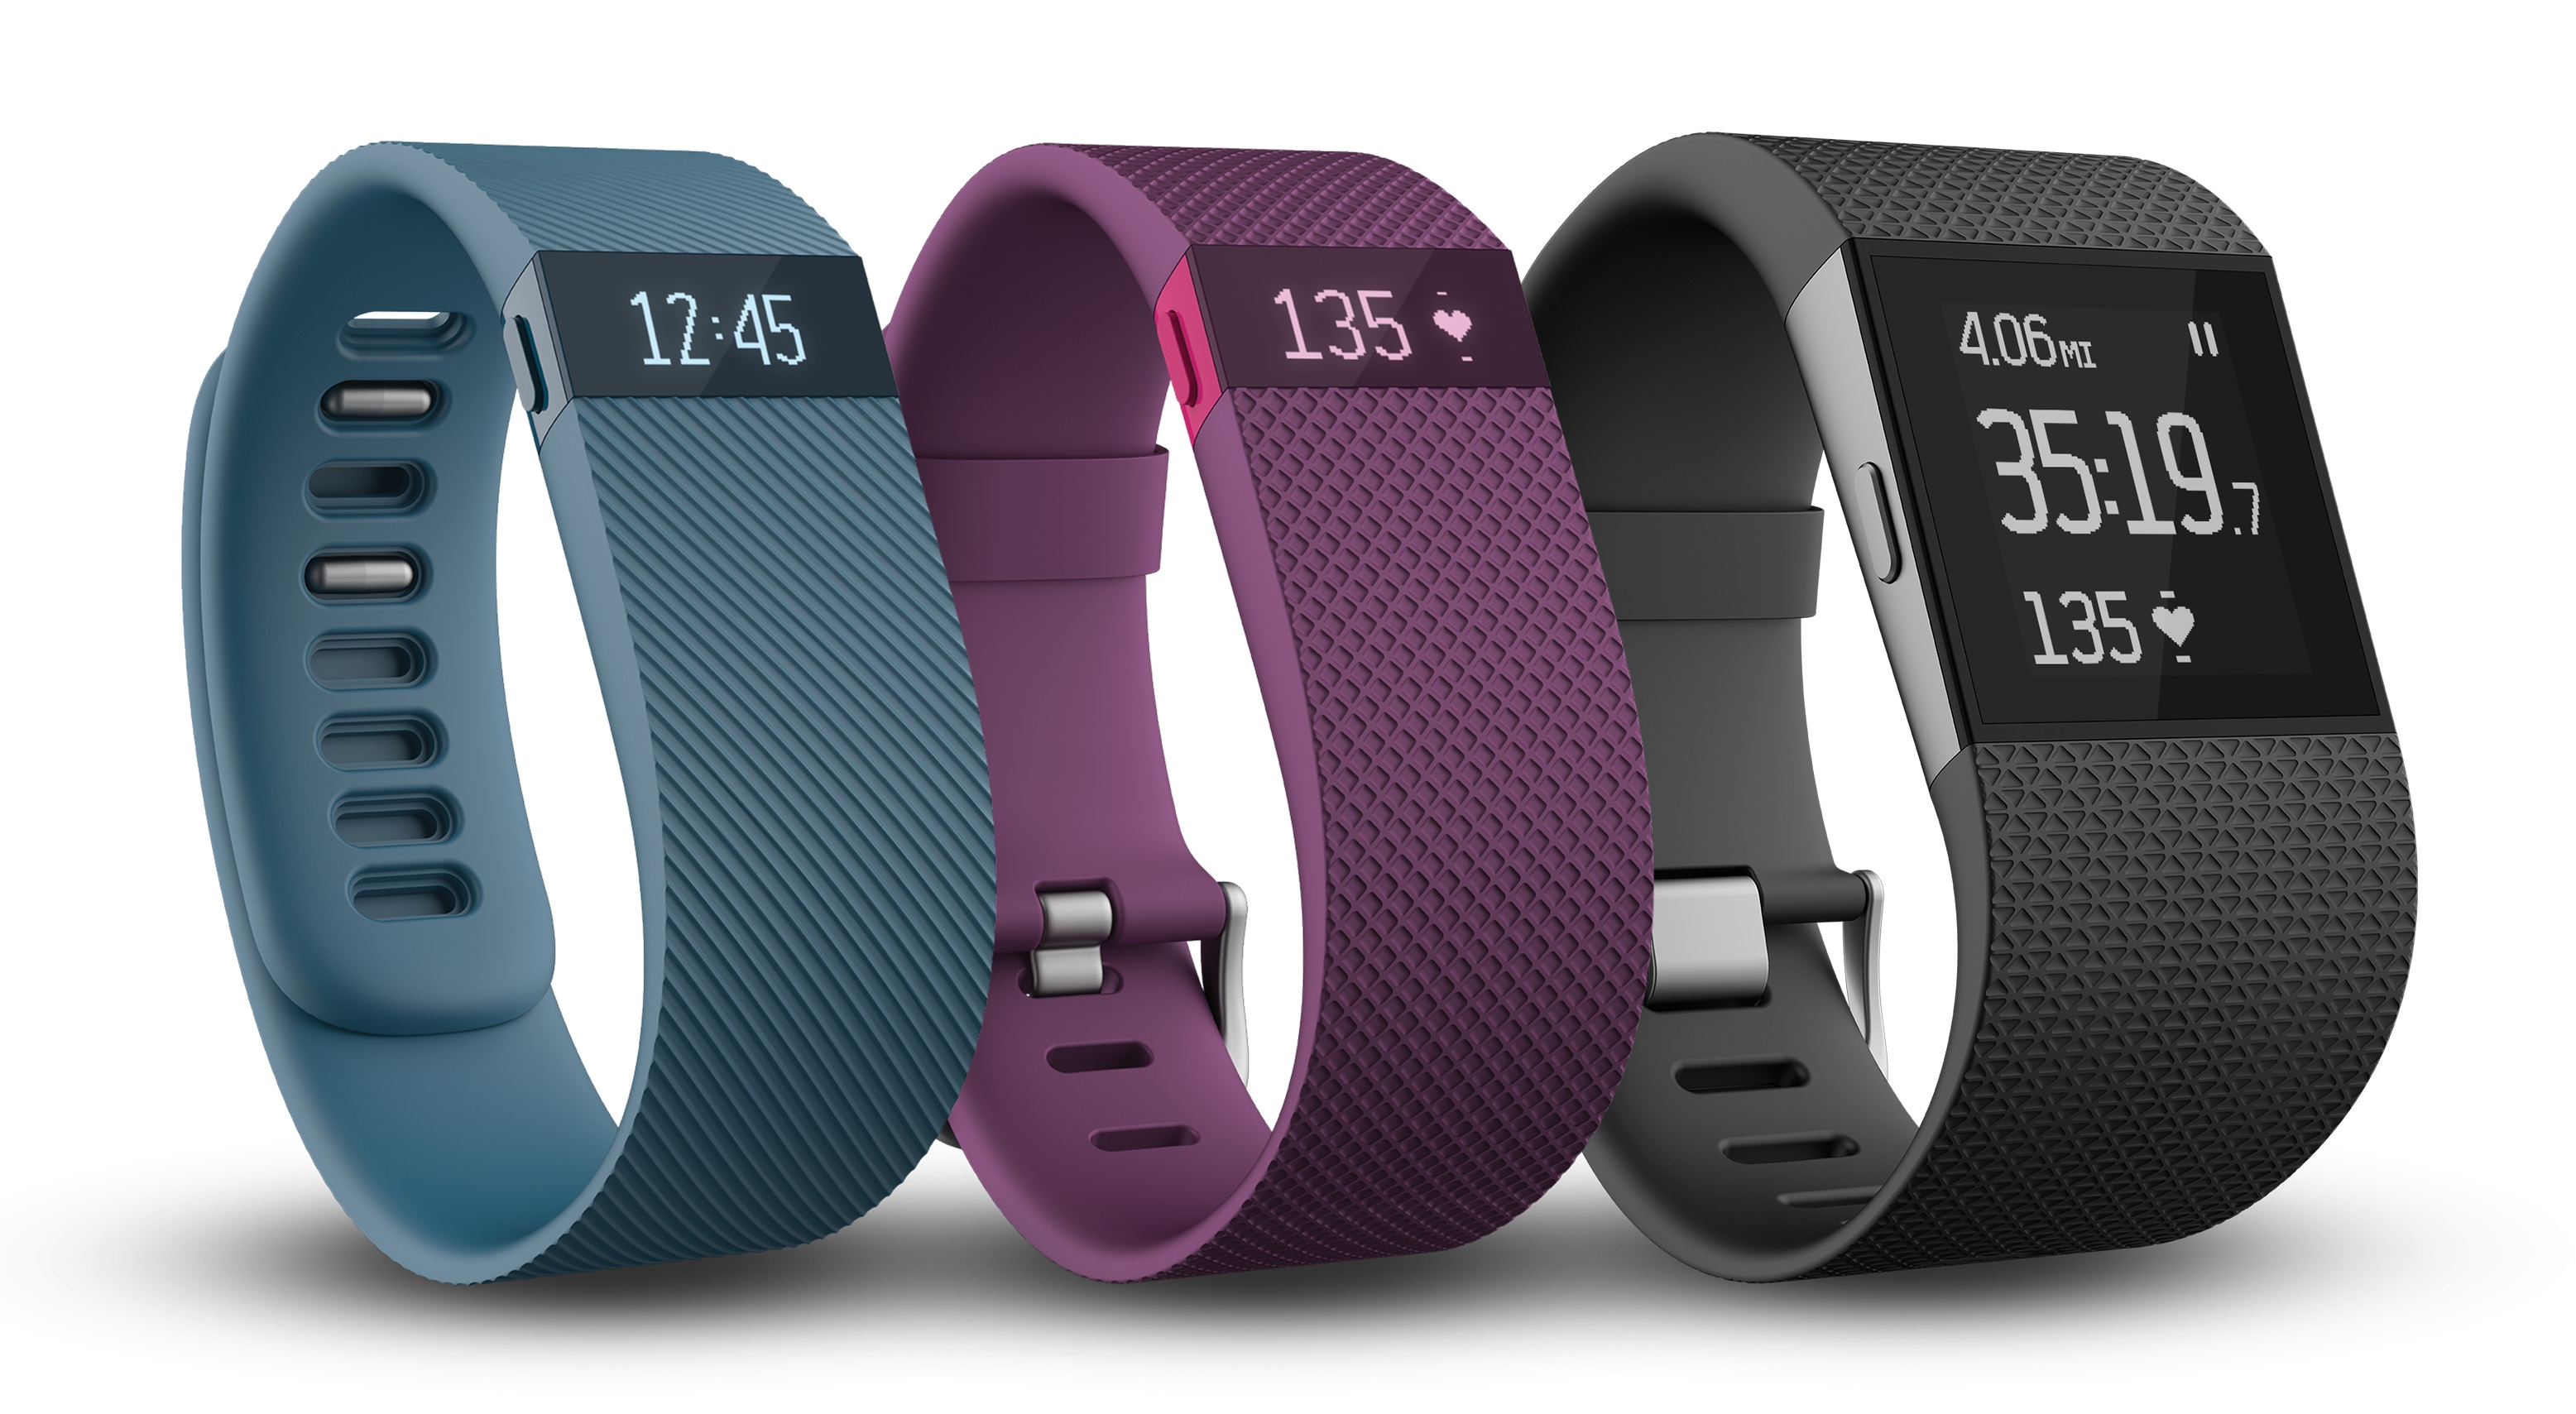 Fitbit charge fitbit download - 1beee